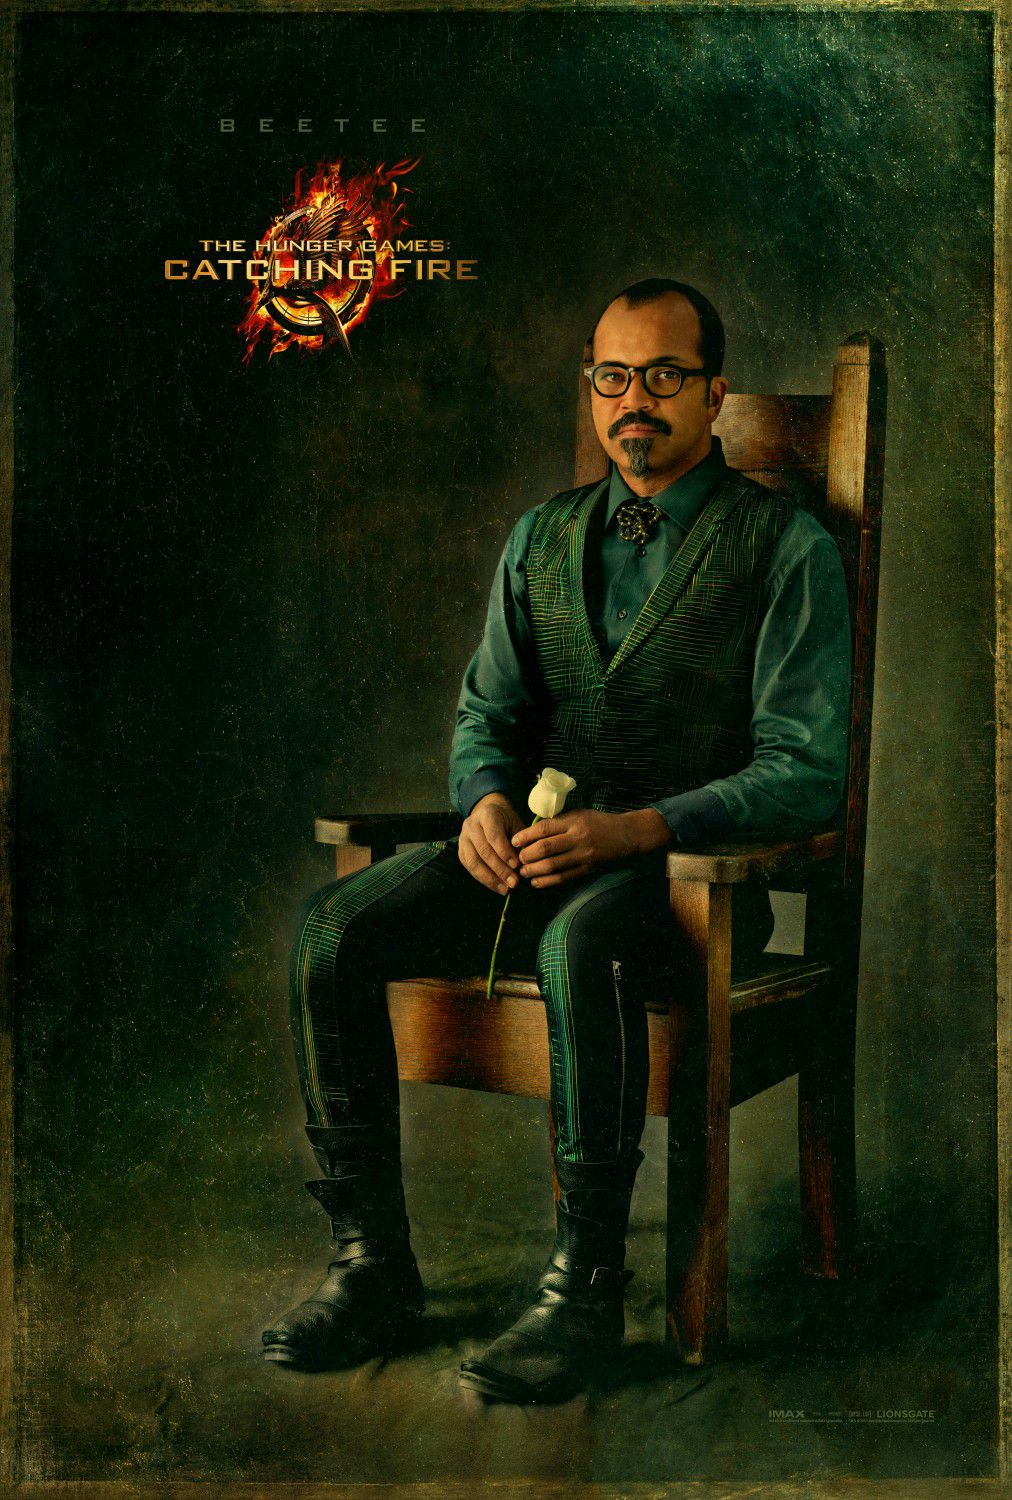 Jeffrey Wright is Beetee